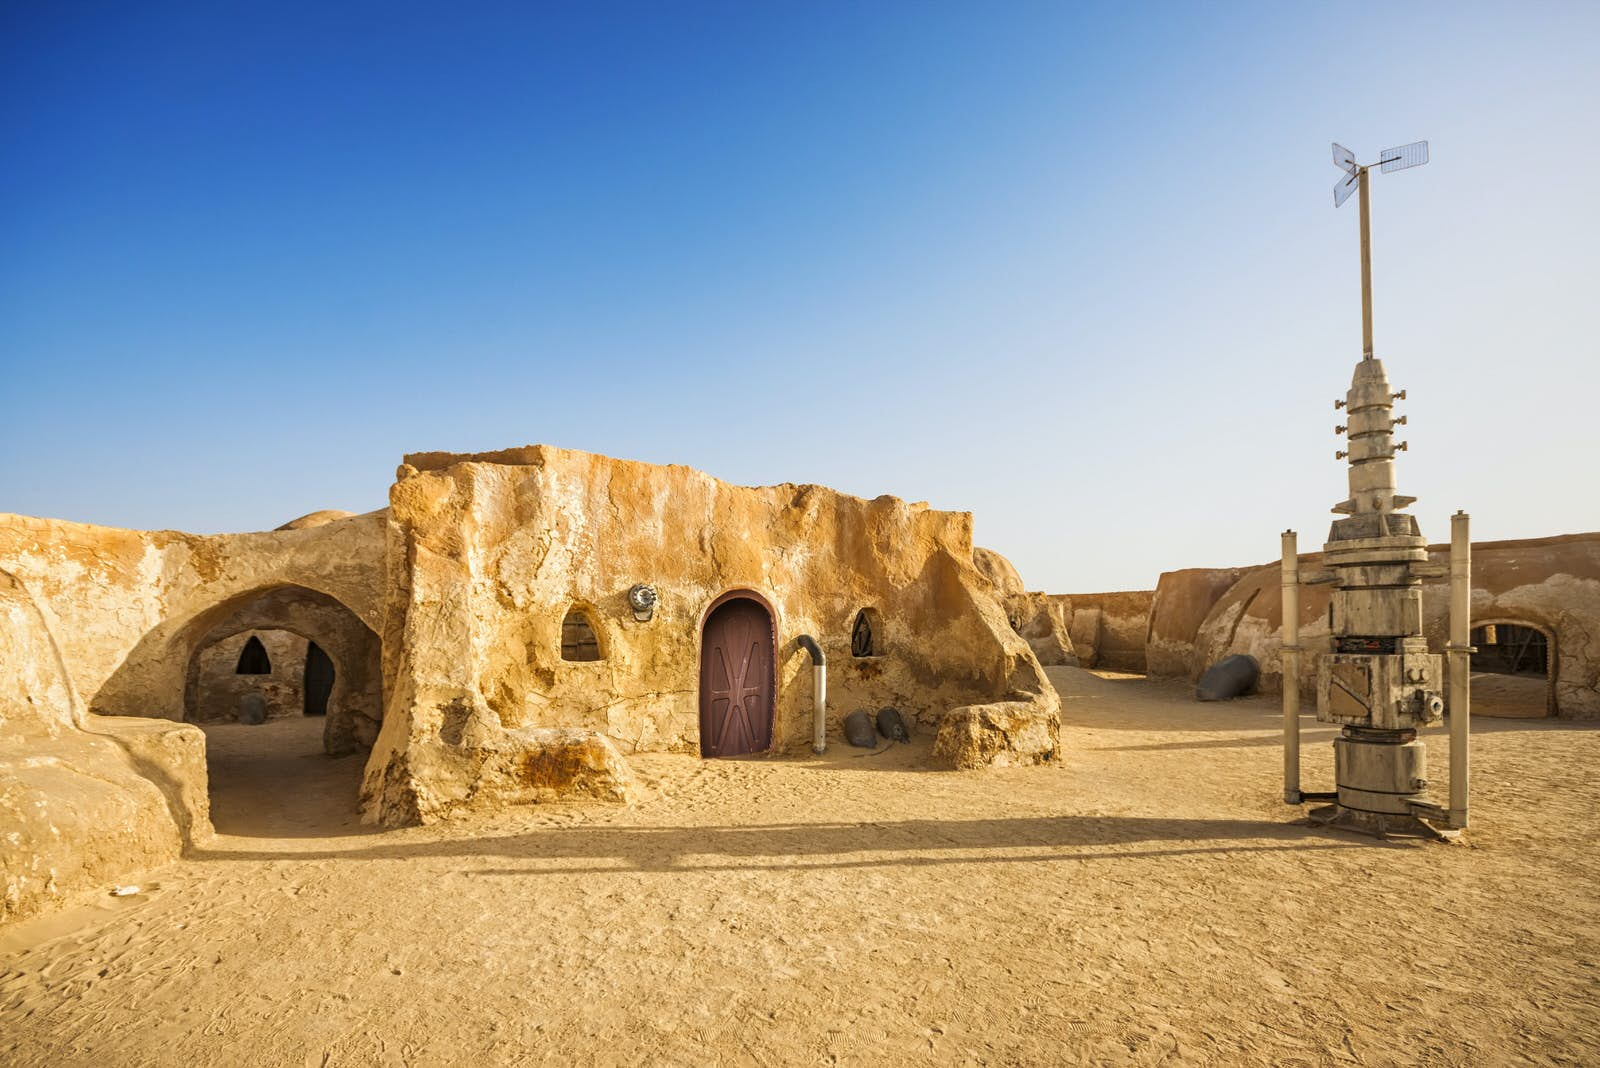 Finding The Force Exploring Star Wars Film Sets In Southern Tunisia Lonely Planet